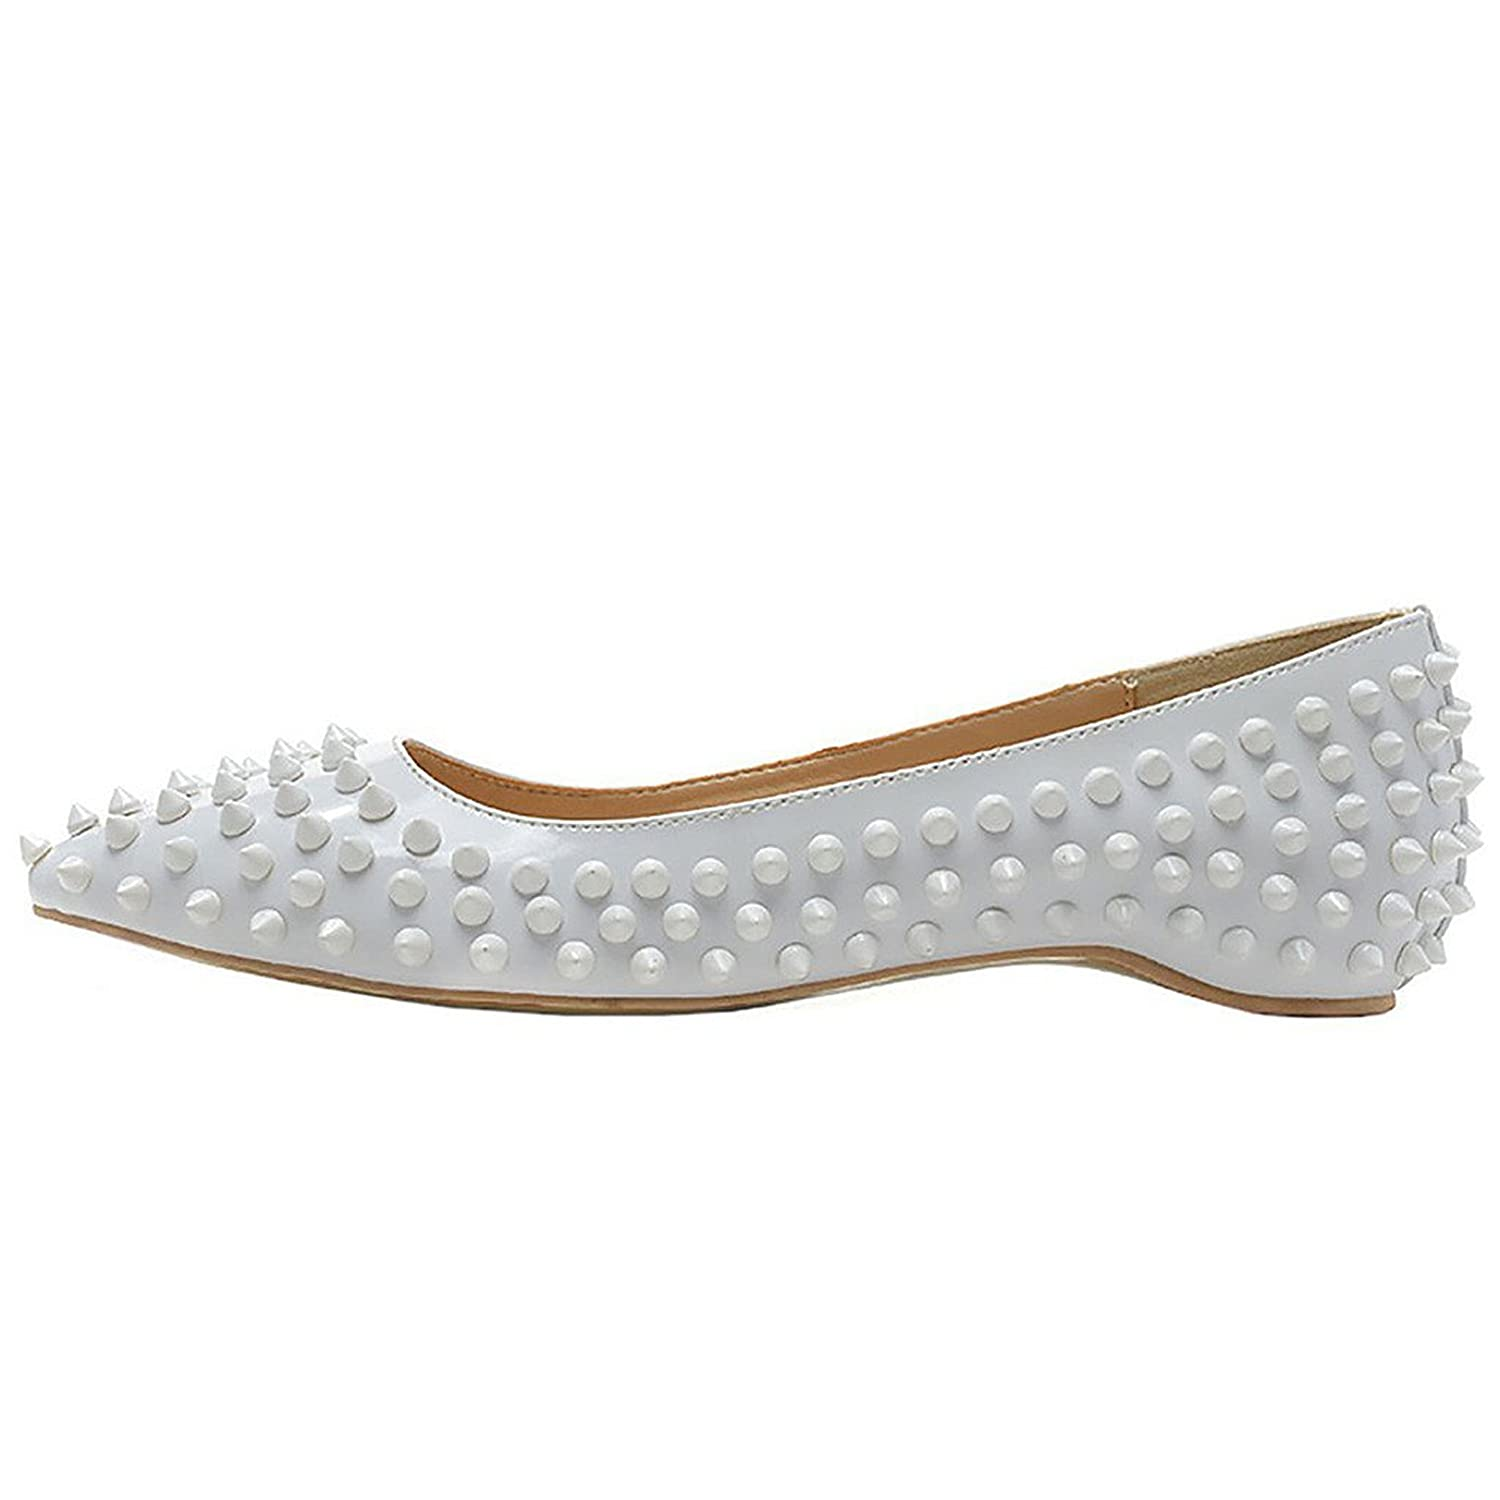 Mermaid Women's Shoes Pointed Toe Spiked Rivets Comfortable Flats B071QYJSQK US10 Feet length 10.3